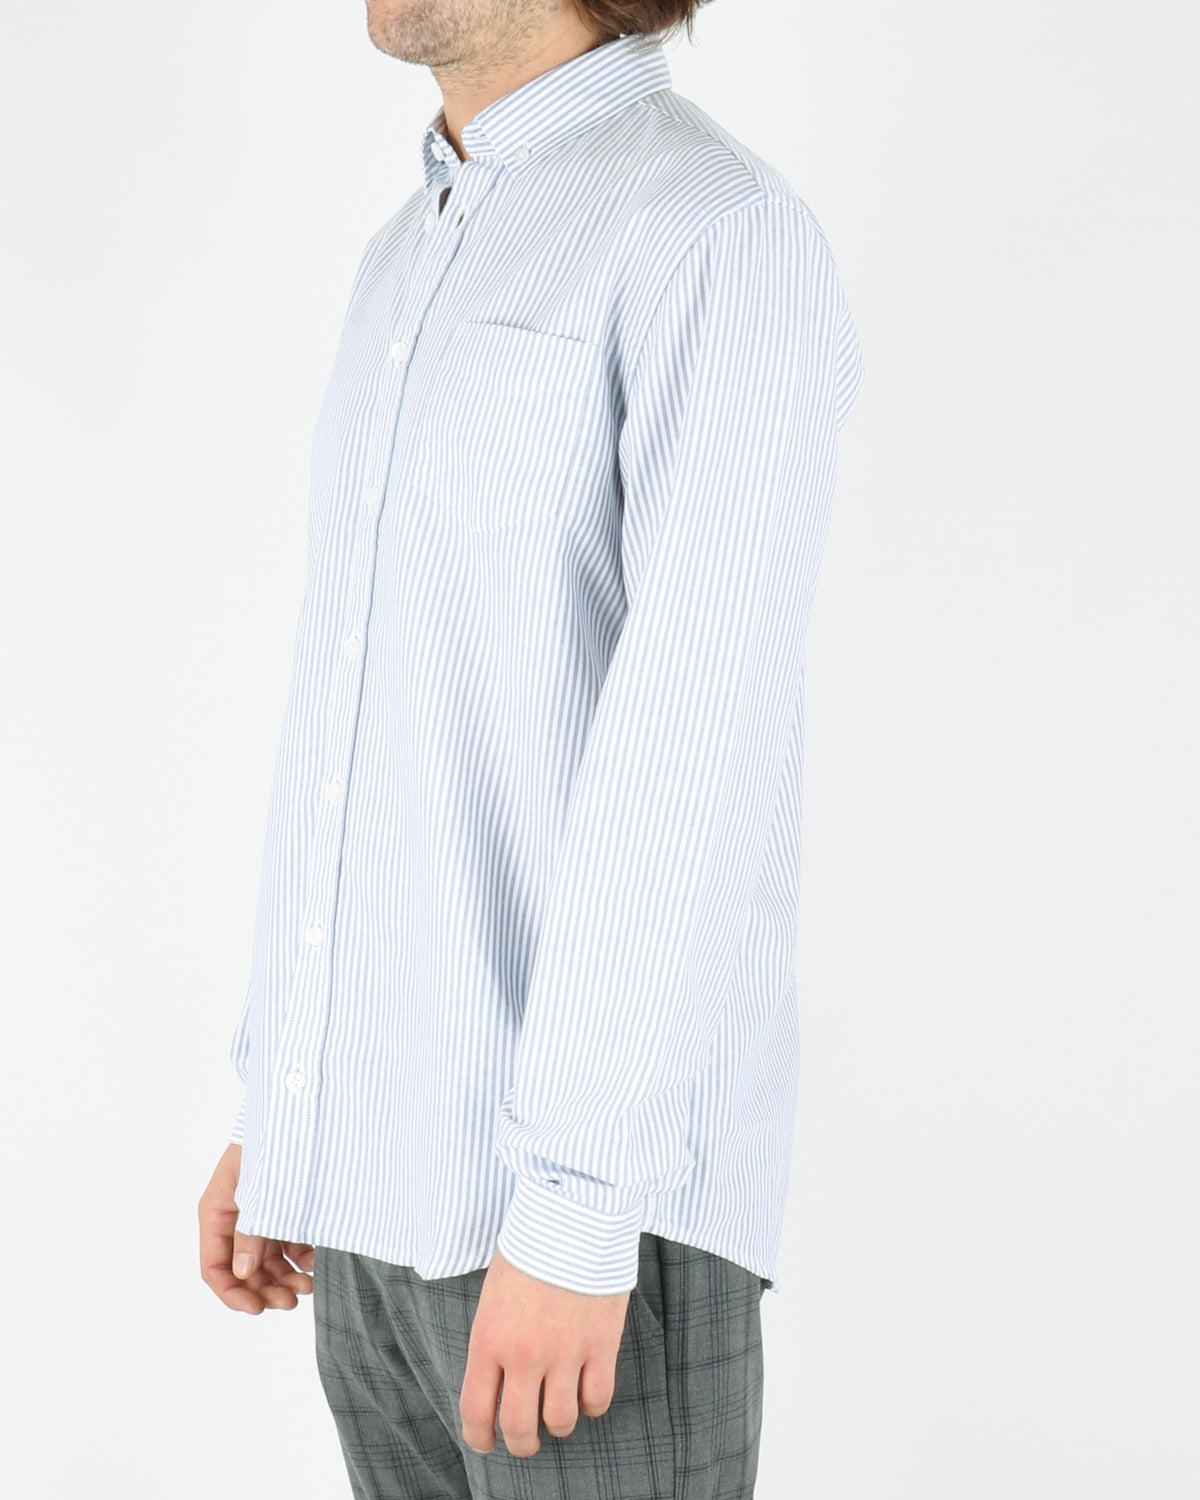 libertine libertine_hunter shirt_white w. blue stripes_2_4